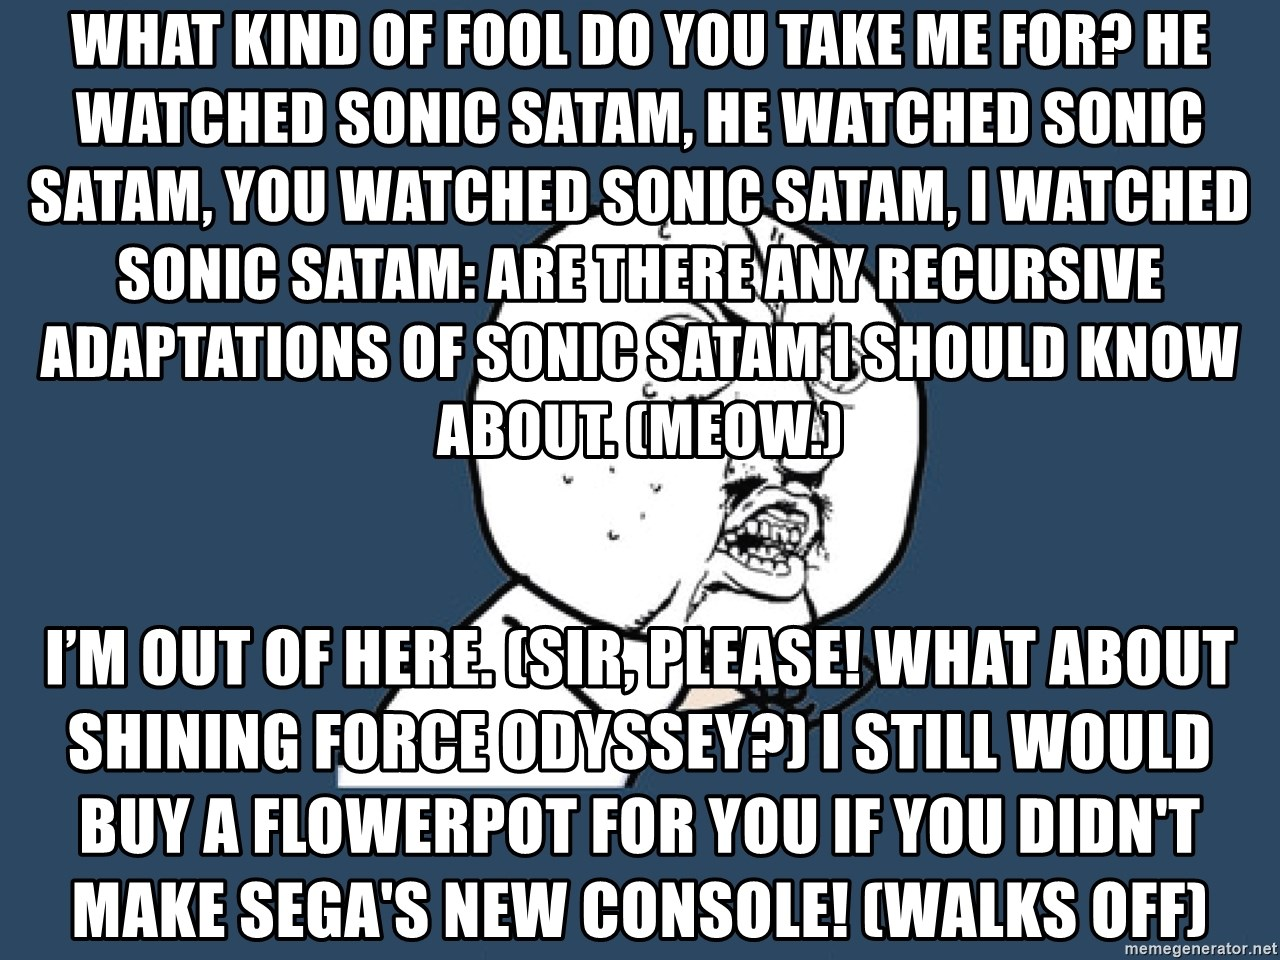 Y U No - What kind of fool do you take me for? He watched Sonic SatAM, he watched Sonic SatAM, you watched Sonic SatAM, I WATCHED SONIC SATAM: Are there any recursive adaptations of Sonic SatAM I should know about. (Meow.) I'm out of here. (Sir, please! What about Shining Force Odyssey?) I still would buy a flowerpot for you if you didn't make Sega's new console! (walks off)